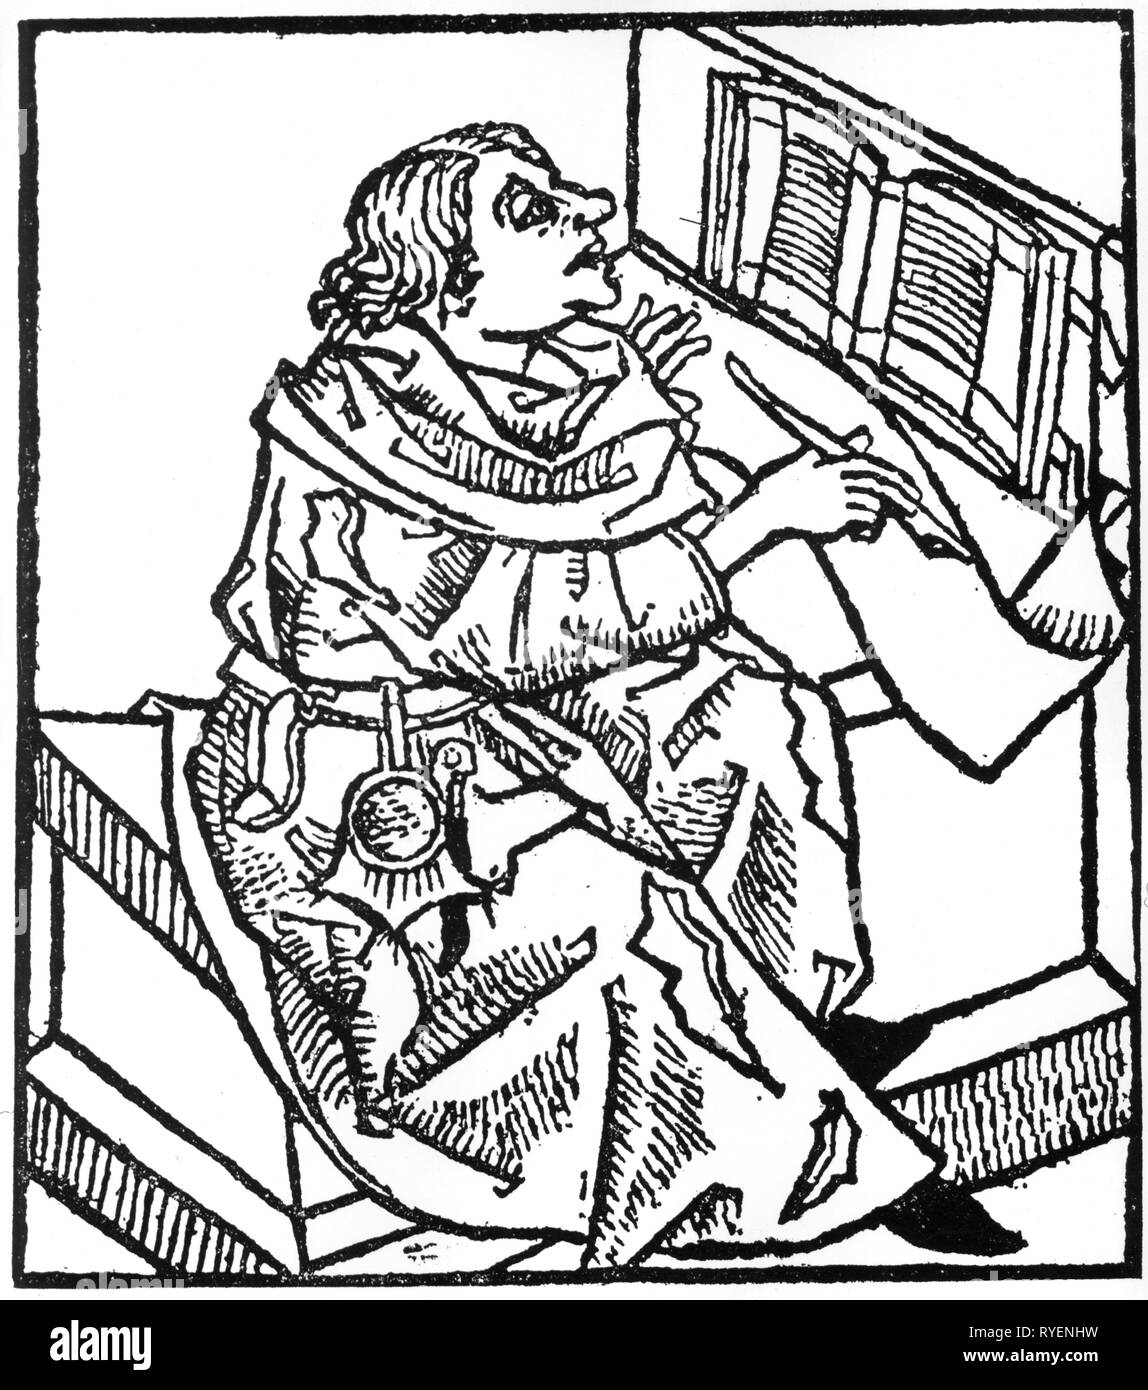 writing, scribe, scholar writing on a pell, woodcut, 'Rudimentum noviciorum sive Chronicarum et historiarum epitome', printed by Lukas Brandis vom Schasz, Luebeck, 5.8.1475, Additional-Rights-Clearance-Info-Not-Available - Stock Image